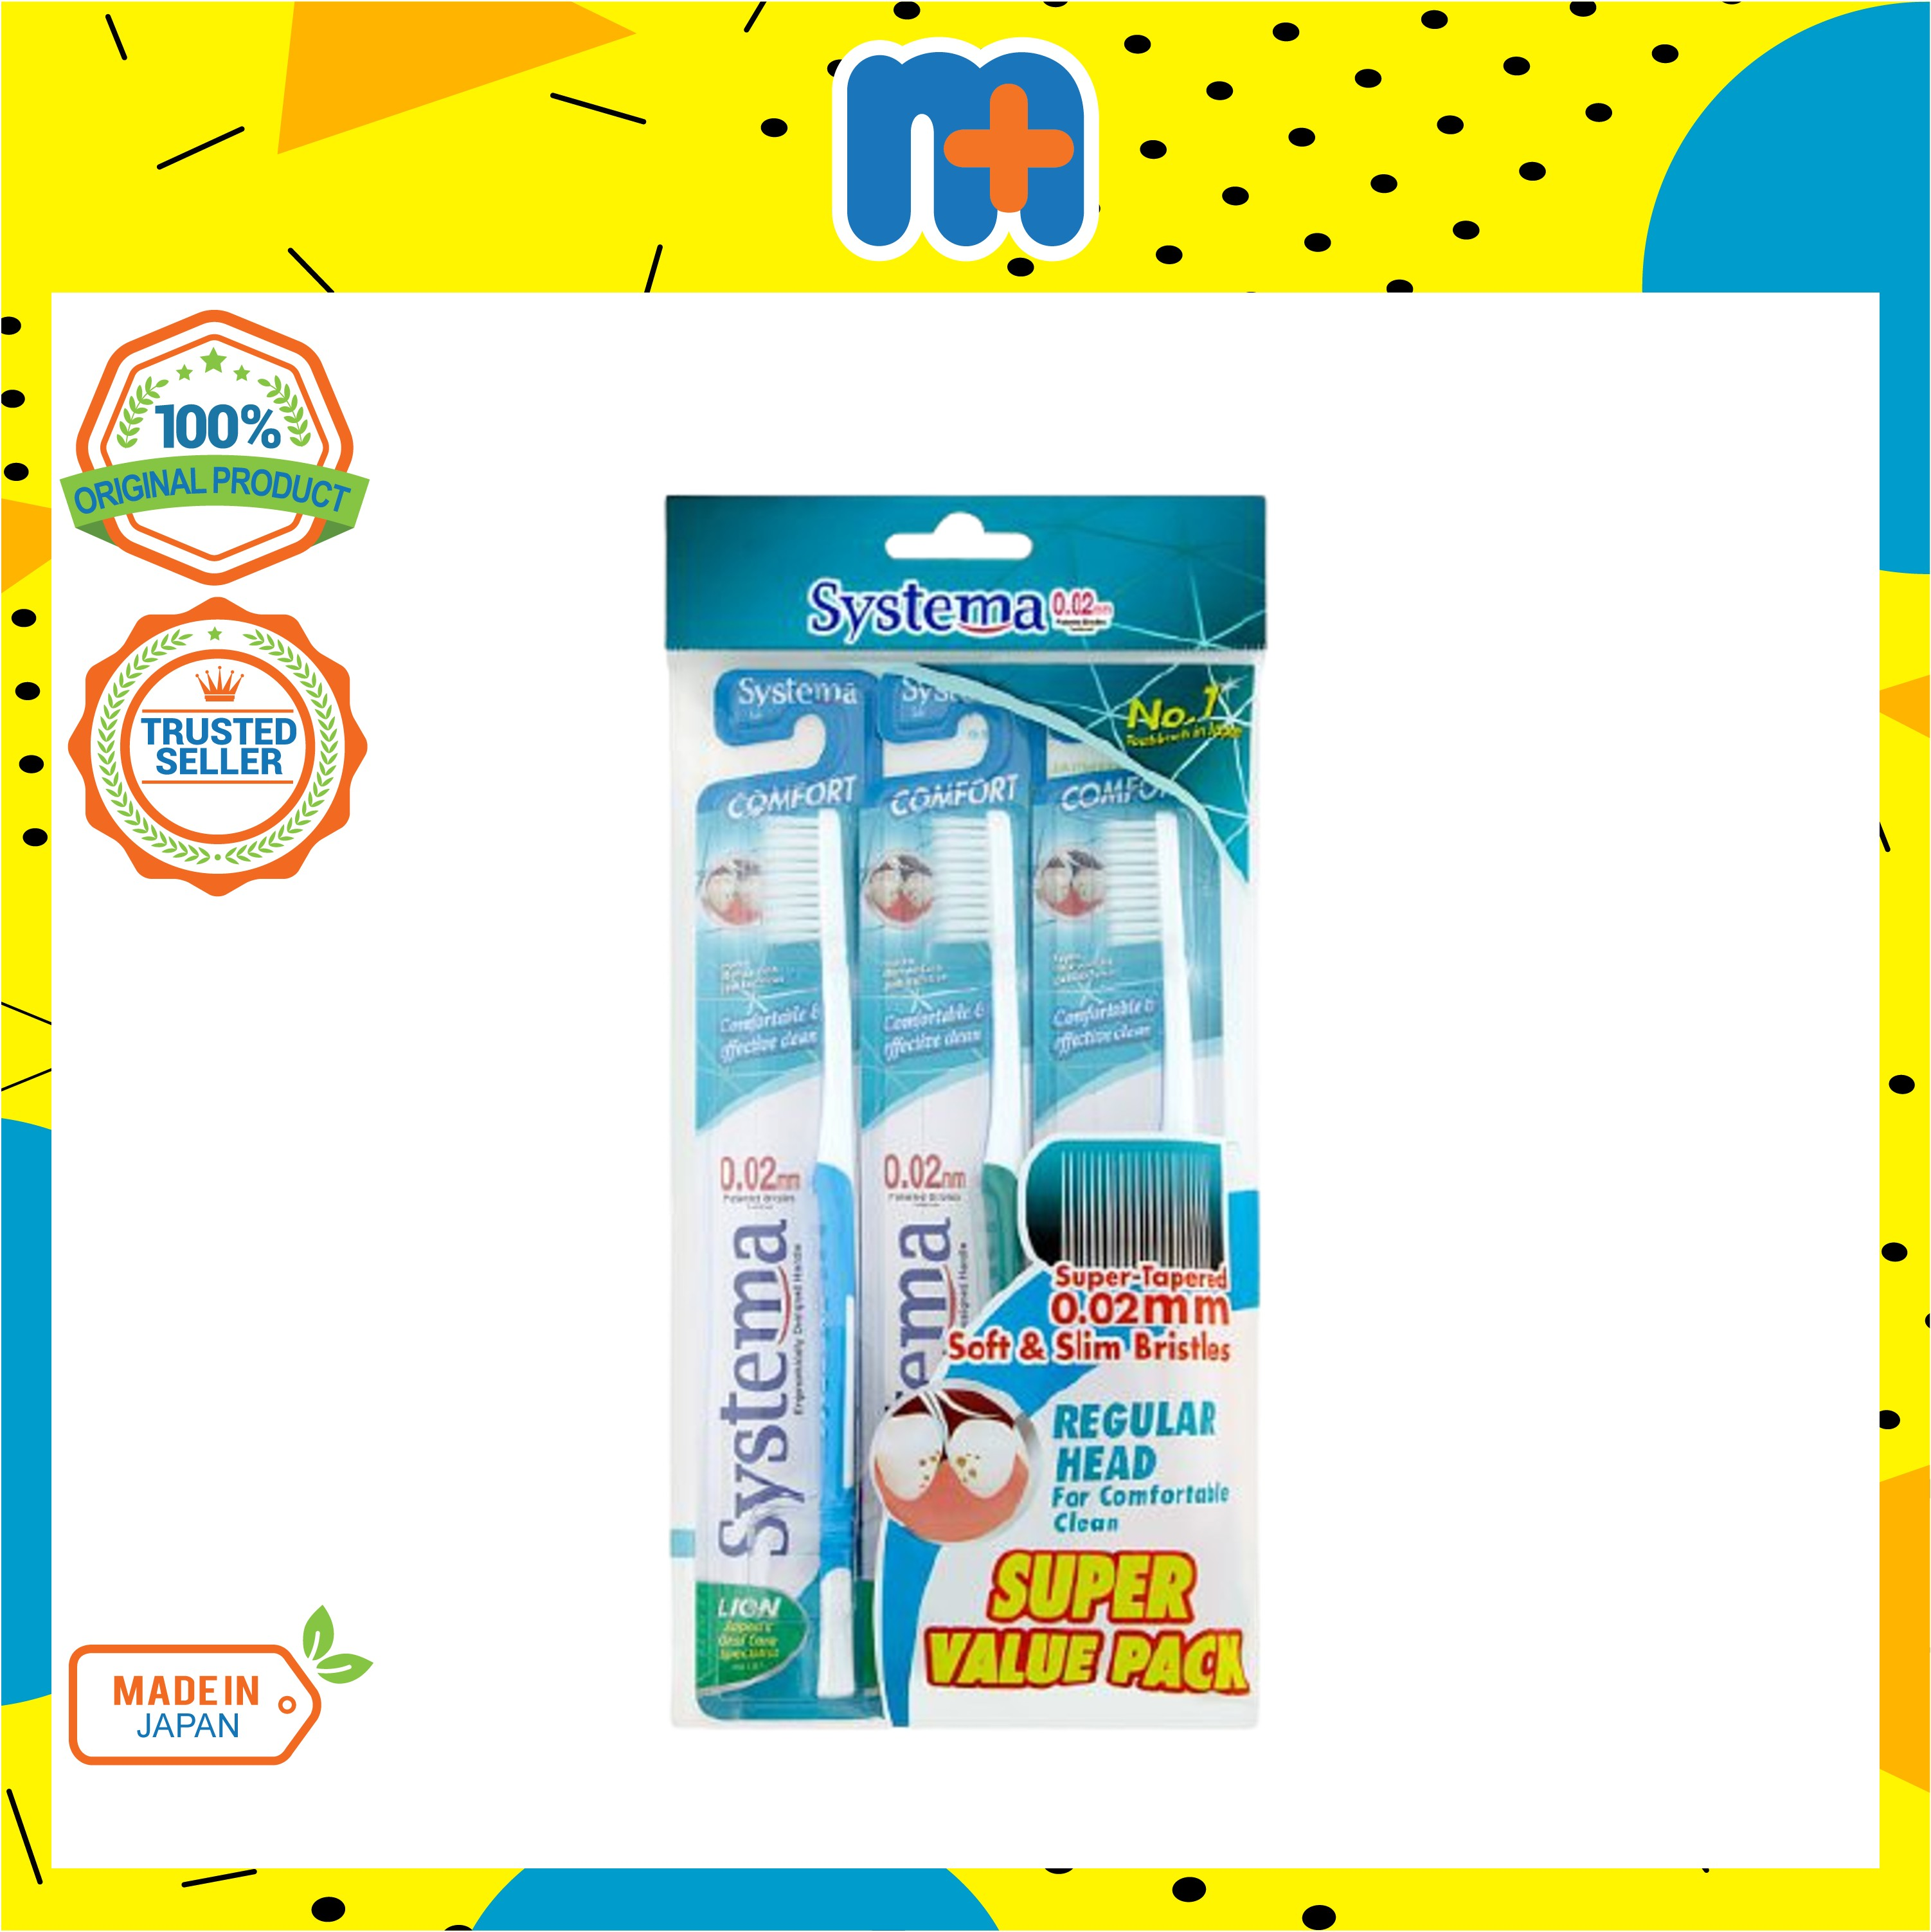 [MPLUS] SYSTEMA Toothbrush Comfort Value Pack 3s